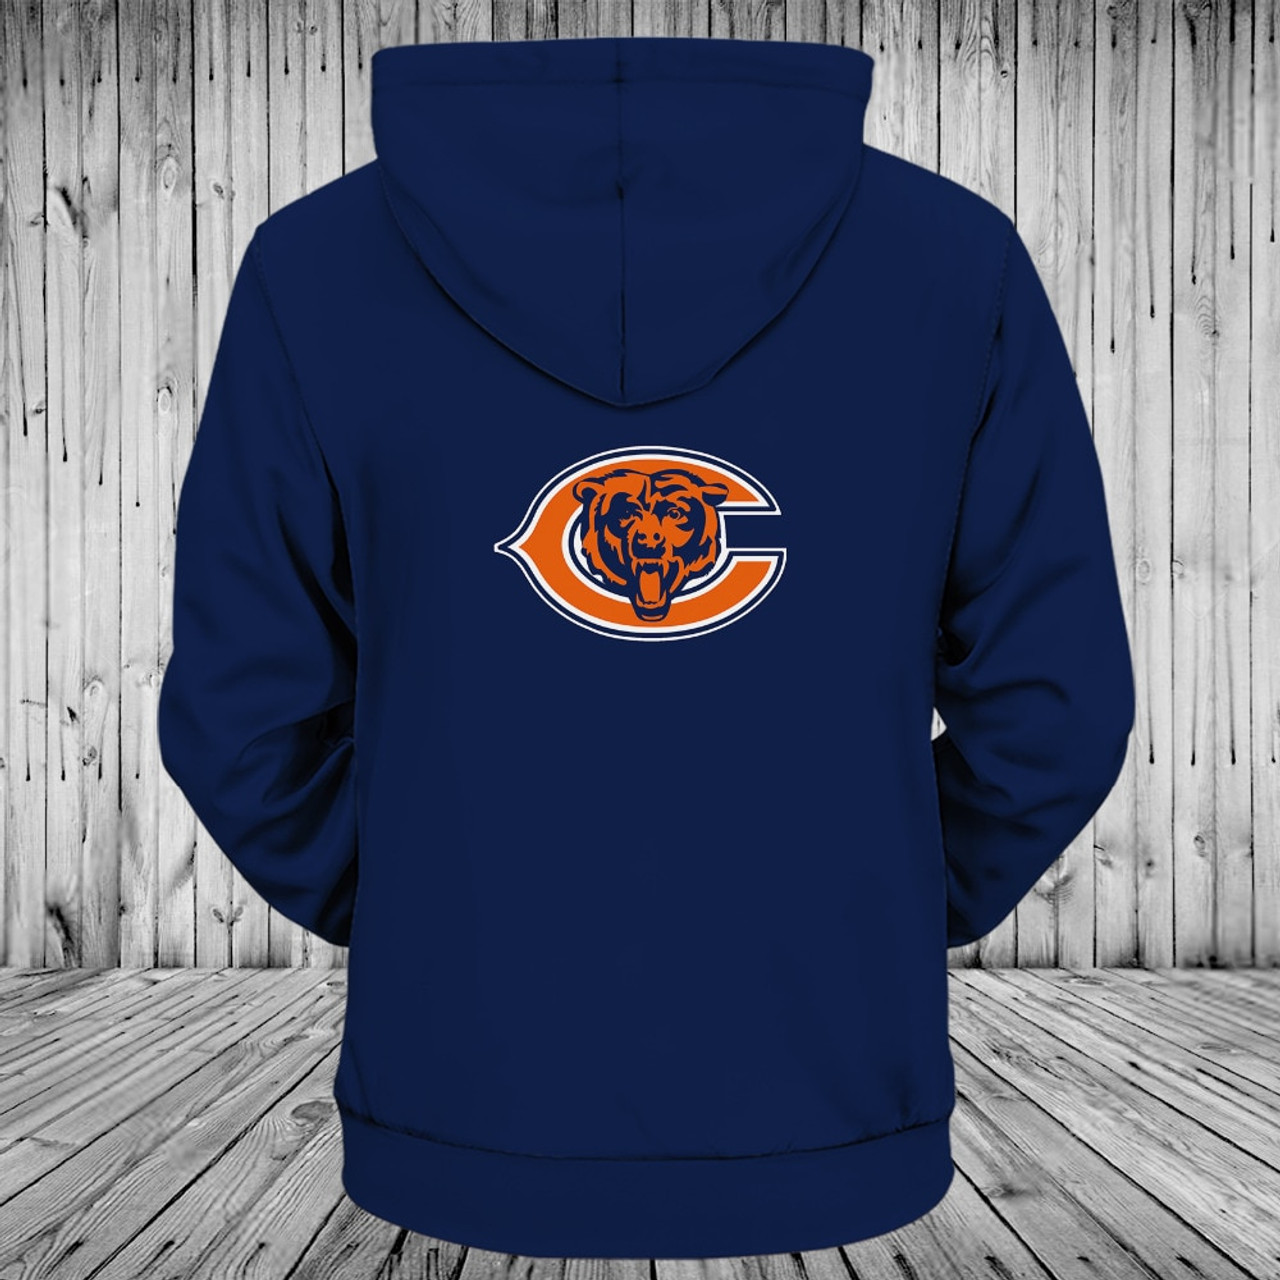 outlet store 979a6 4fde9 **(OFFICIALLY-LICENSED-N.F.L.CHICAGO-BEARS-TRENDY-PULLOVER-POCKET-HOODIES/CUSTOM-ALL-OVER-GRAPHIC-3D-PRINTED-IN-BEARS-TEAM-LOGOS  & ...